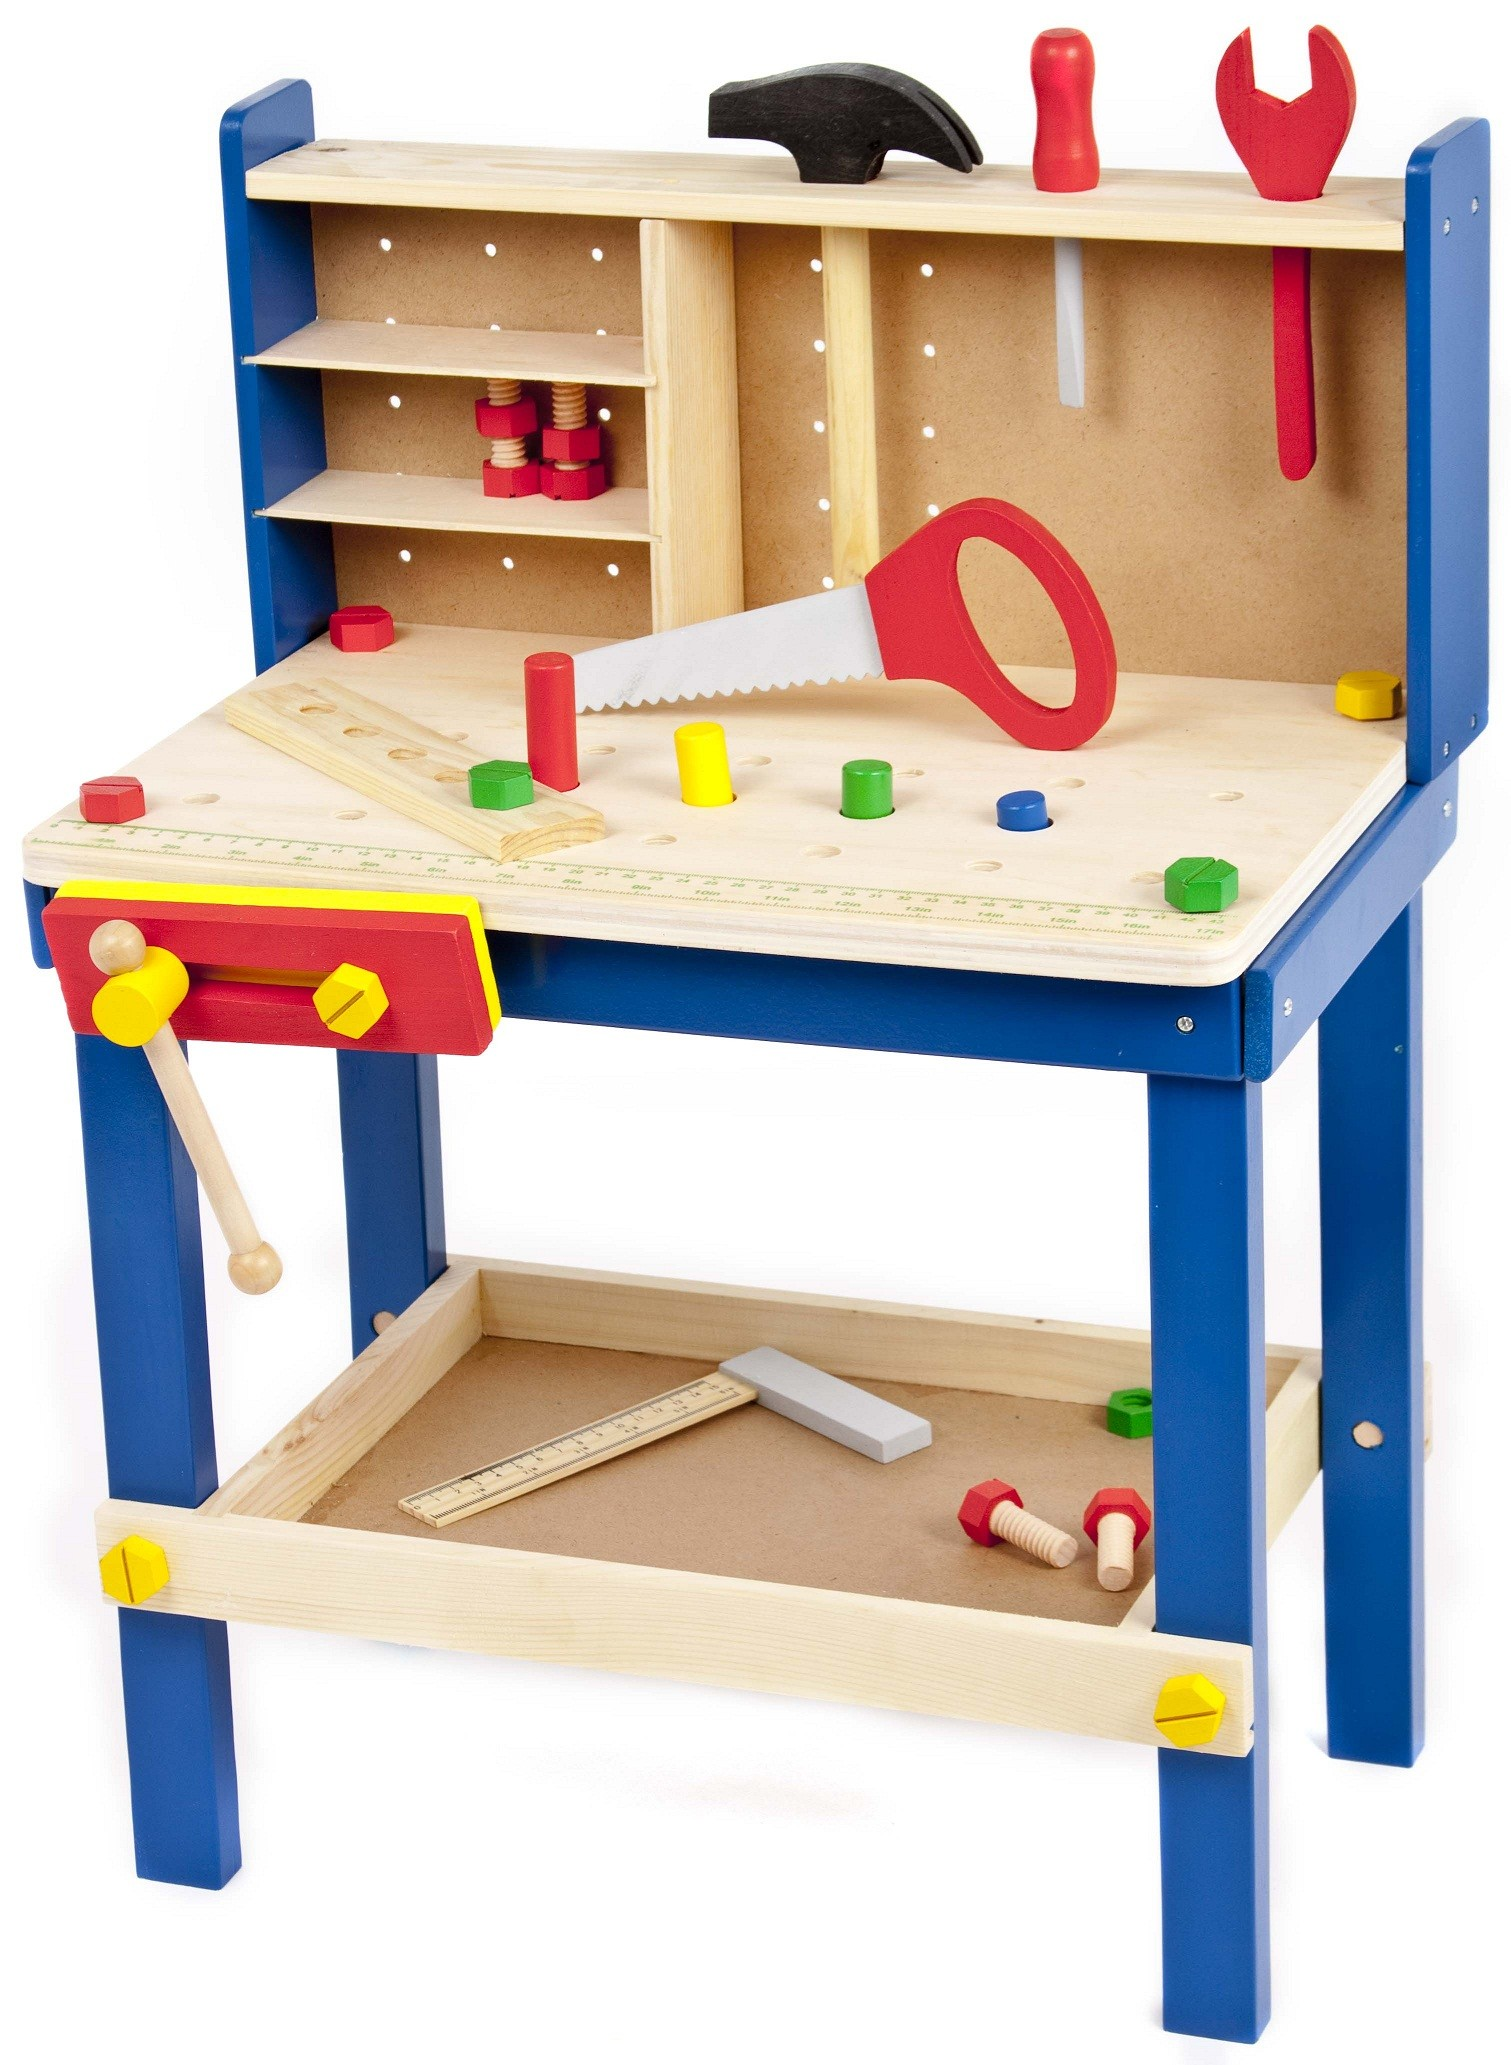 34 Piece Wooden Tool Work Bench Table Tools Children 39 S Kids Play Toy Xmas Gift Ebay